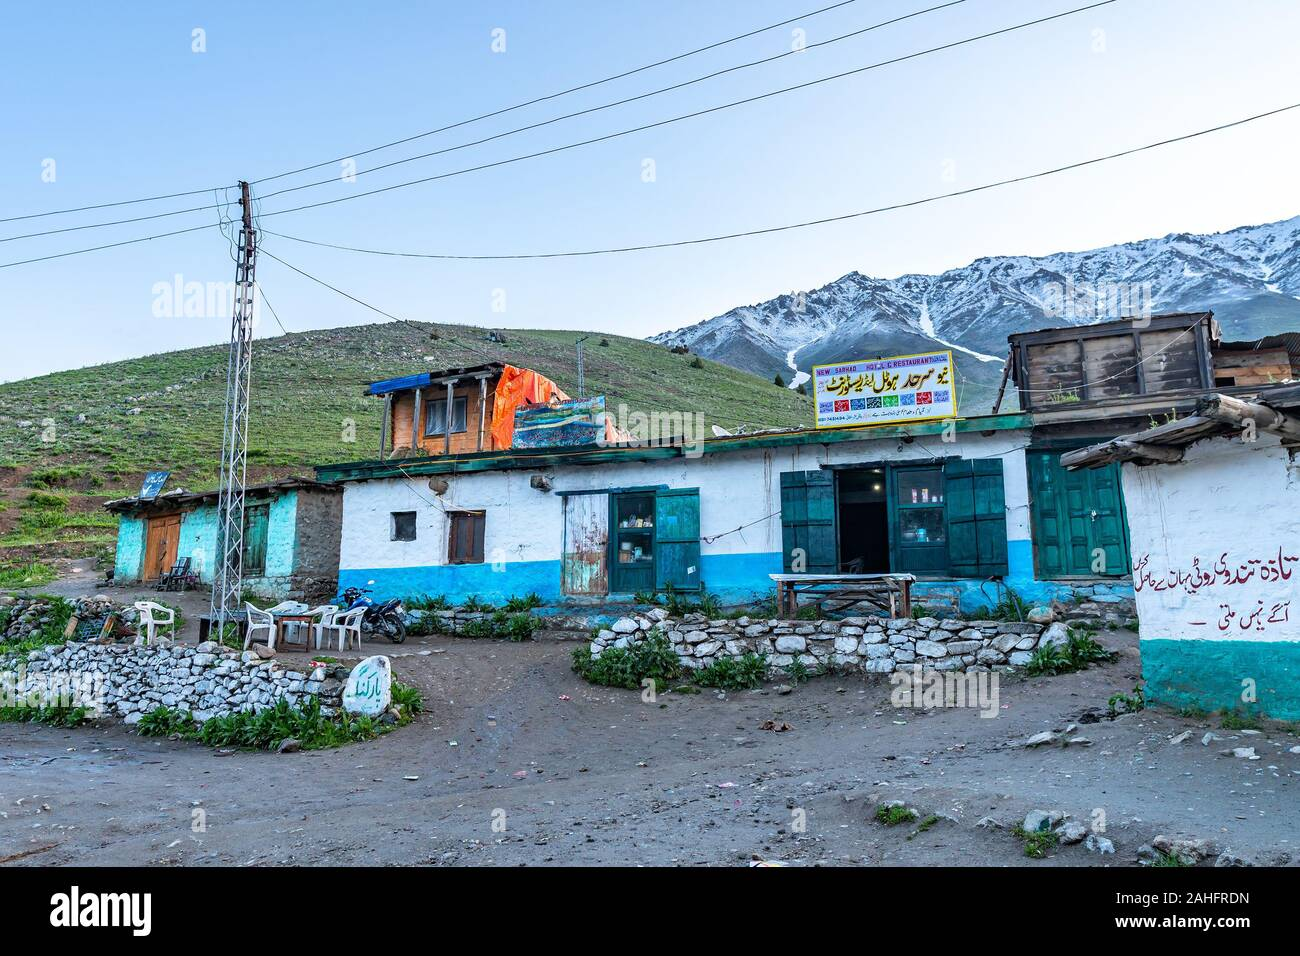 Deosai National Park Chilum Village Picturesque Breathtaking View of Restaurants in the Morning with Blue Sky Stock Photo